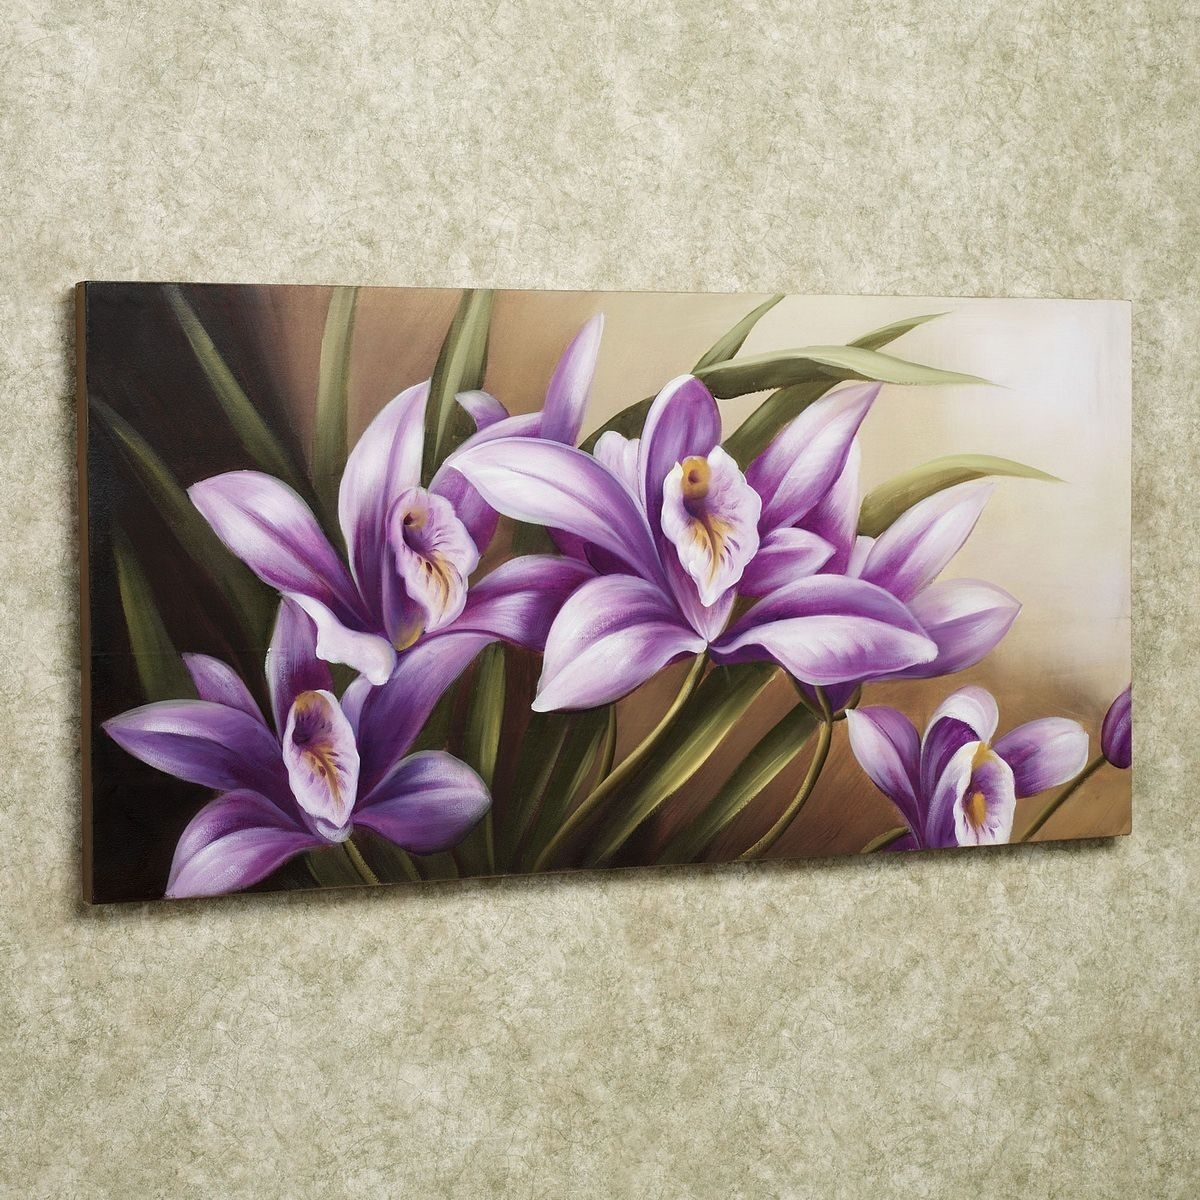 Easy Canvas Painting Ideas:scenic Ideas Sensuality Of Iris Purple Pertaining To Most Up To Date Purple Flowers Canvas Wall Art (View 7 of 15)